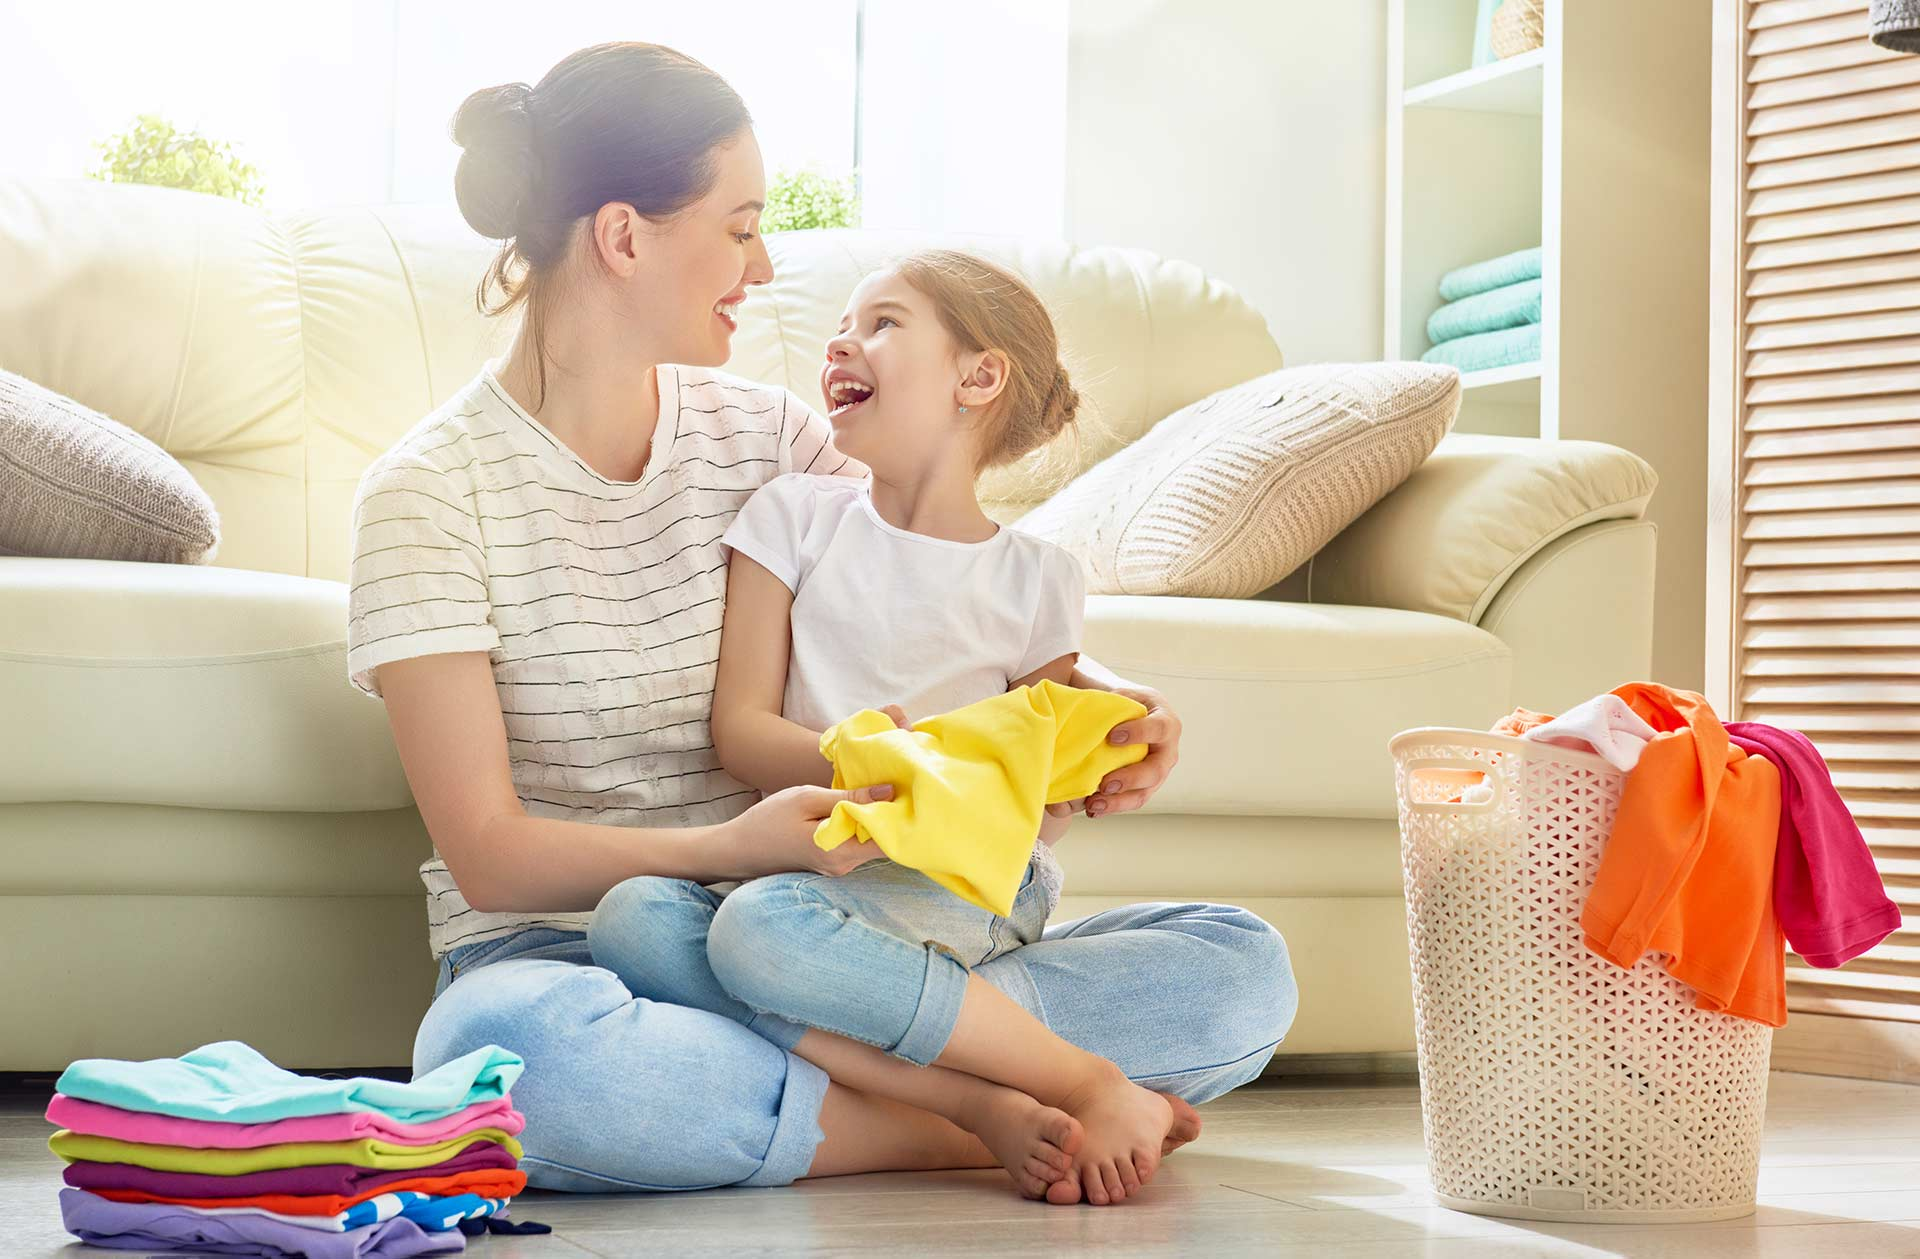 A woman and her young daughter happily fold laundry together